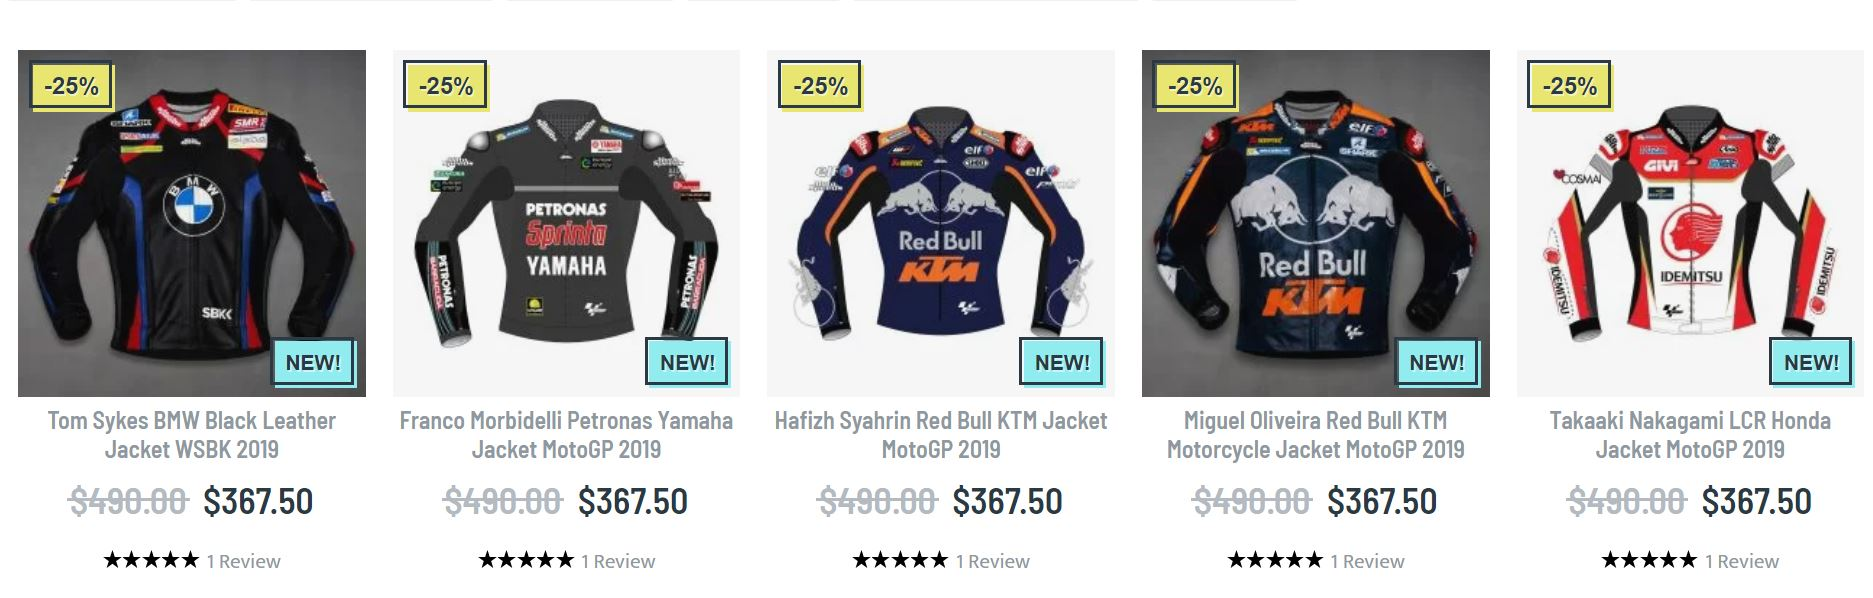 Motogp motorcycle jacket